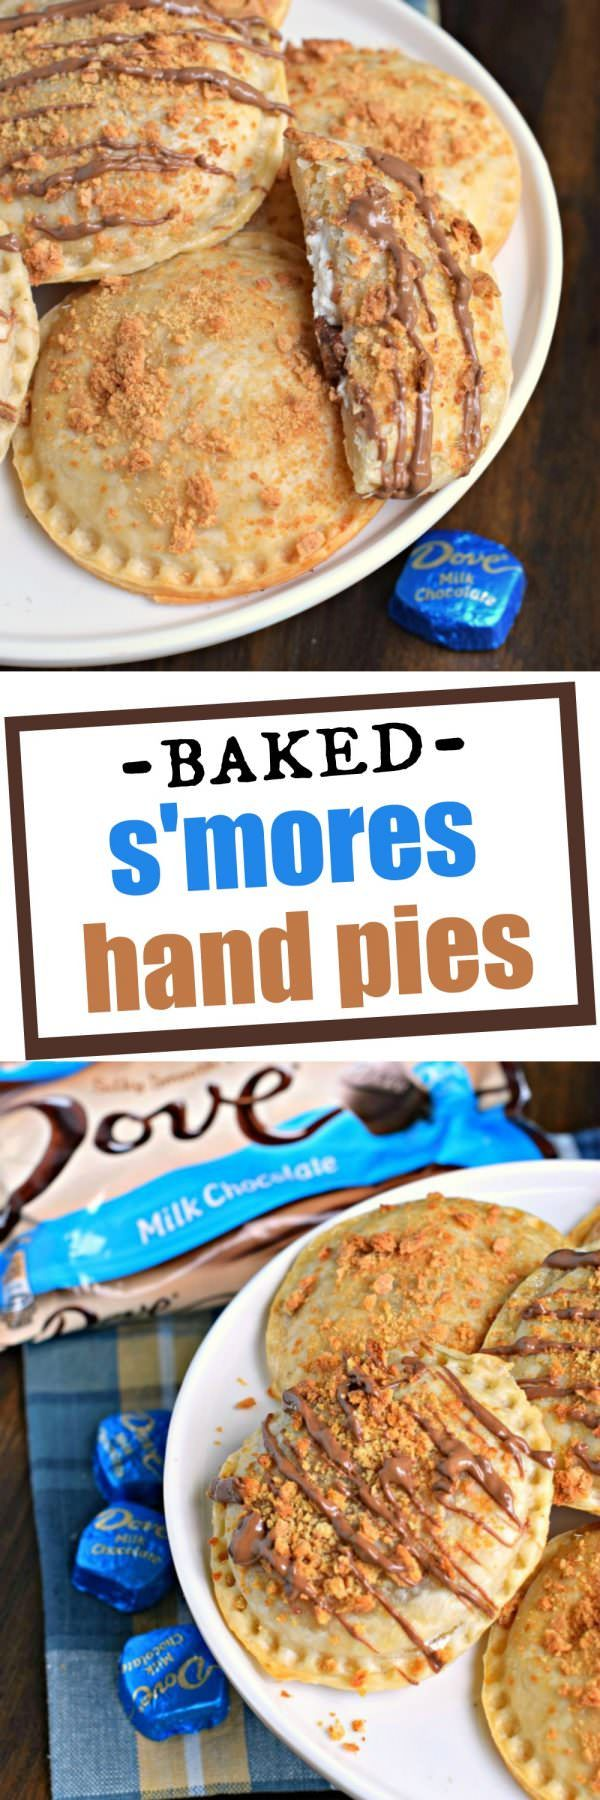 No campfire needed for these Ooey Gooey BAKED S'mores Hand Pies! They're filled…